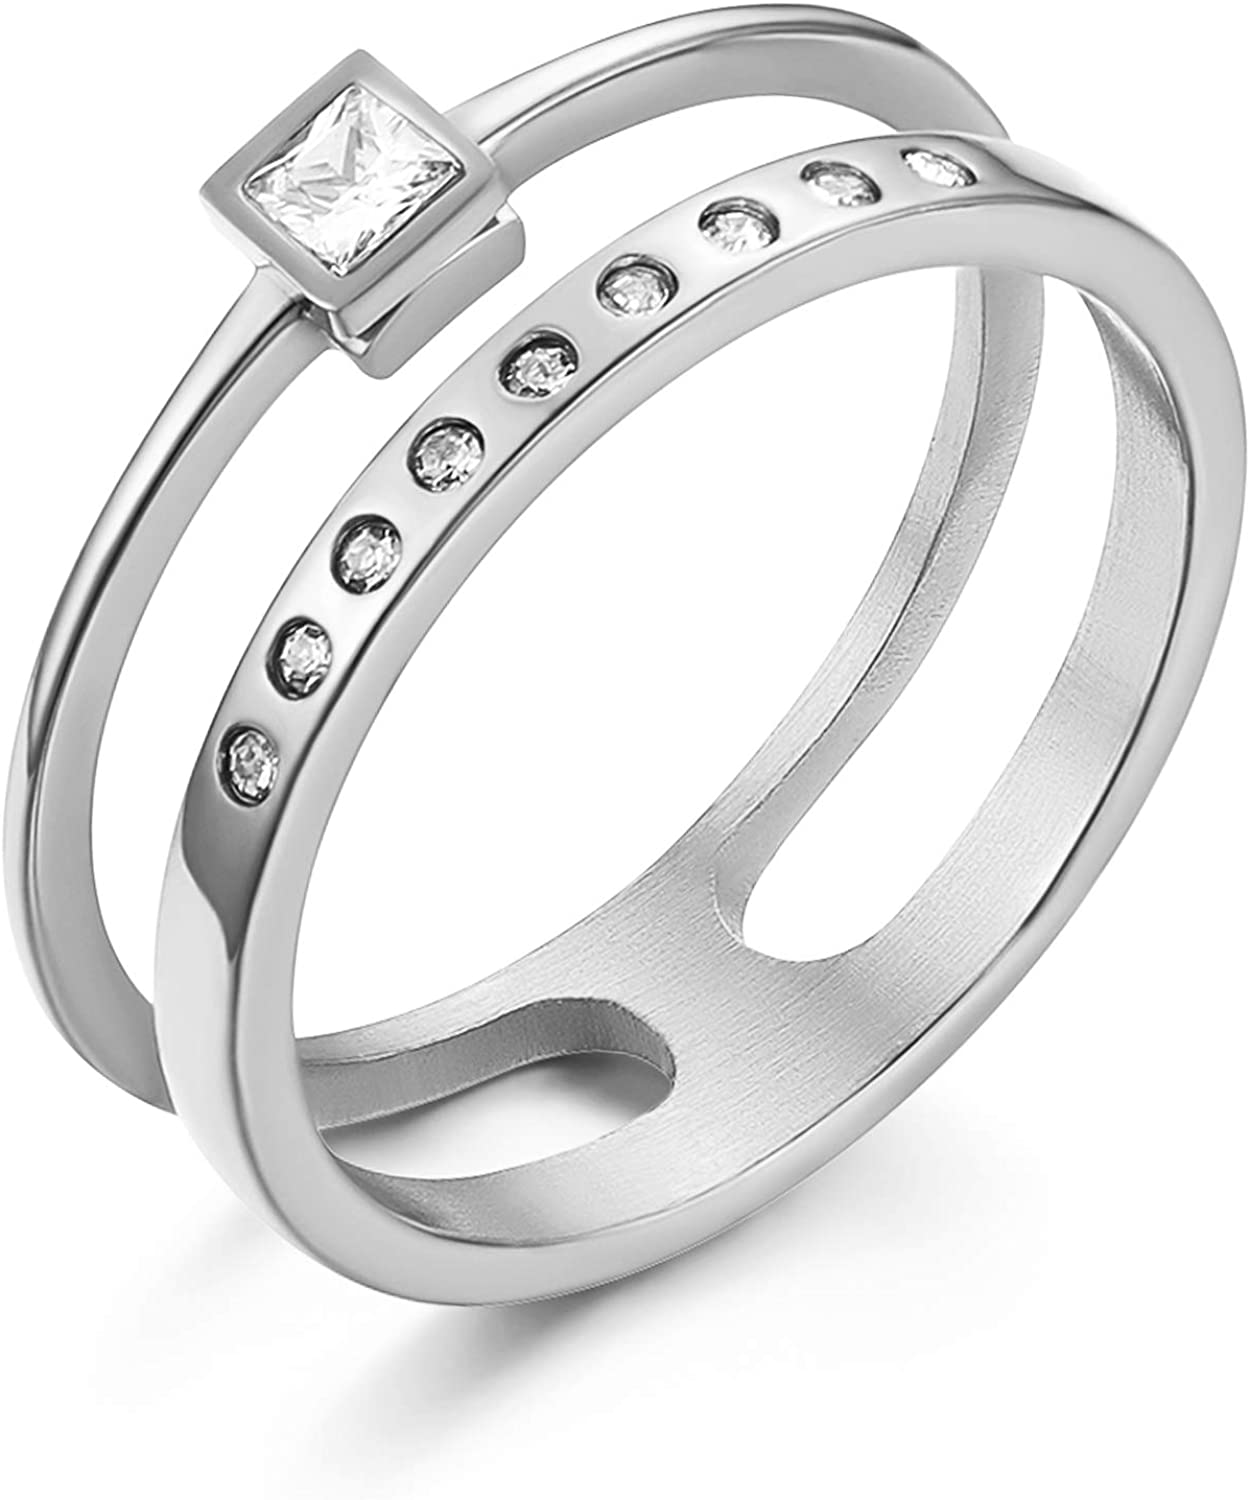 HZMAN Women Engagement Wedding Stainless Steel Jewelry Hollow Design Inlaid Cubic Zirconia Eternity Ring Size 6-9